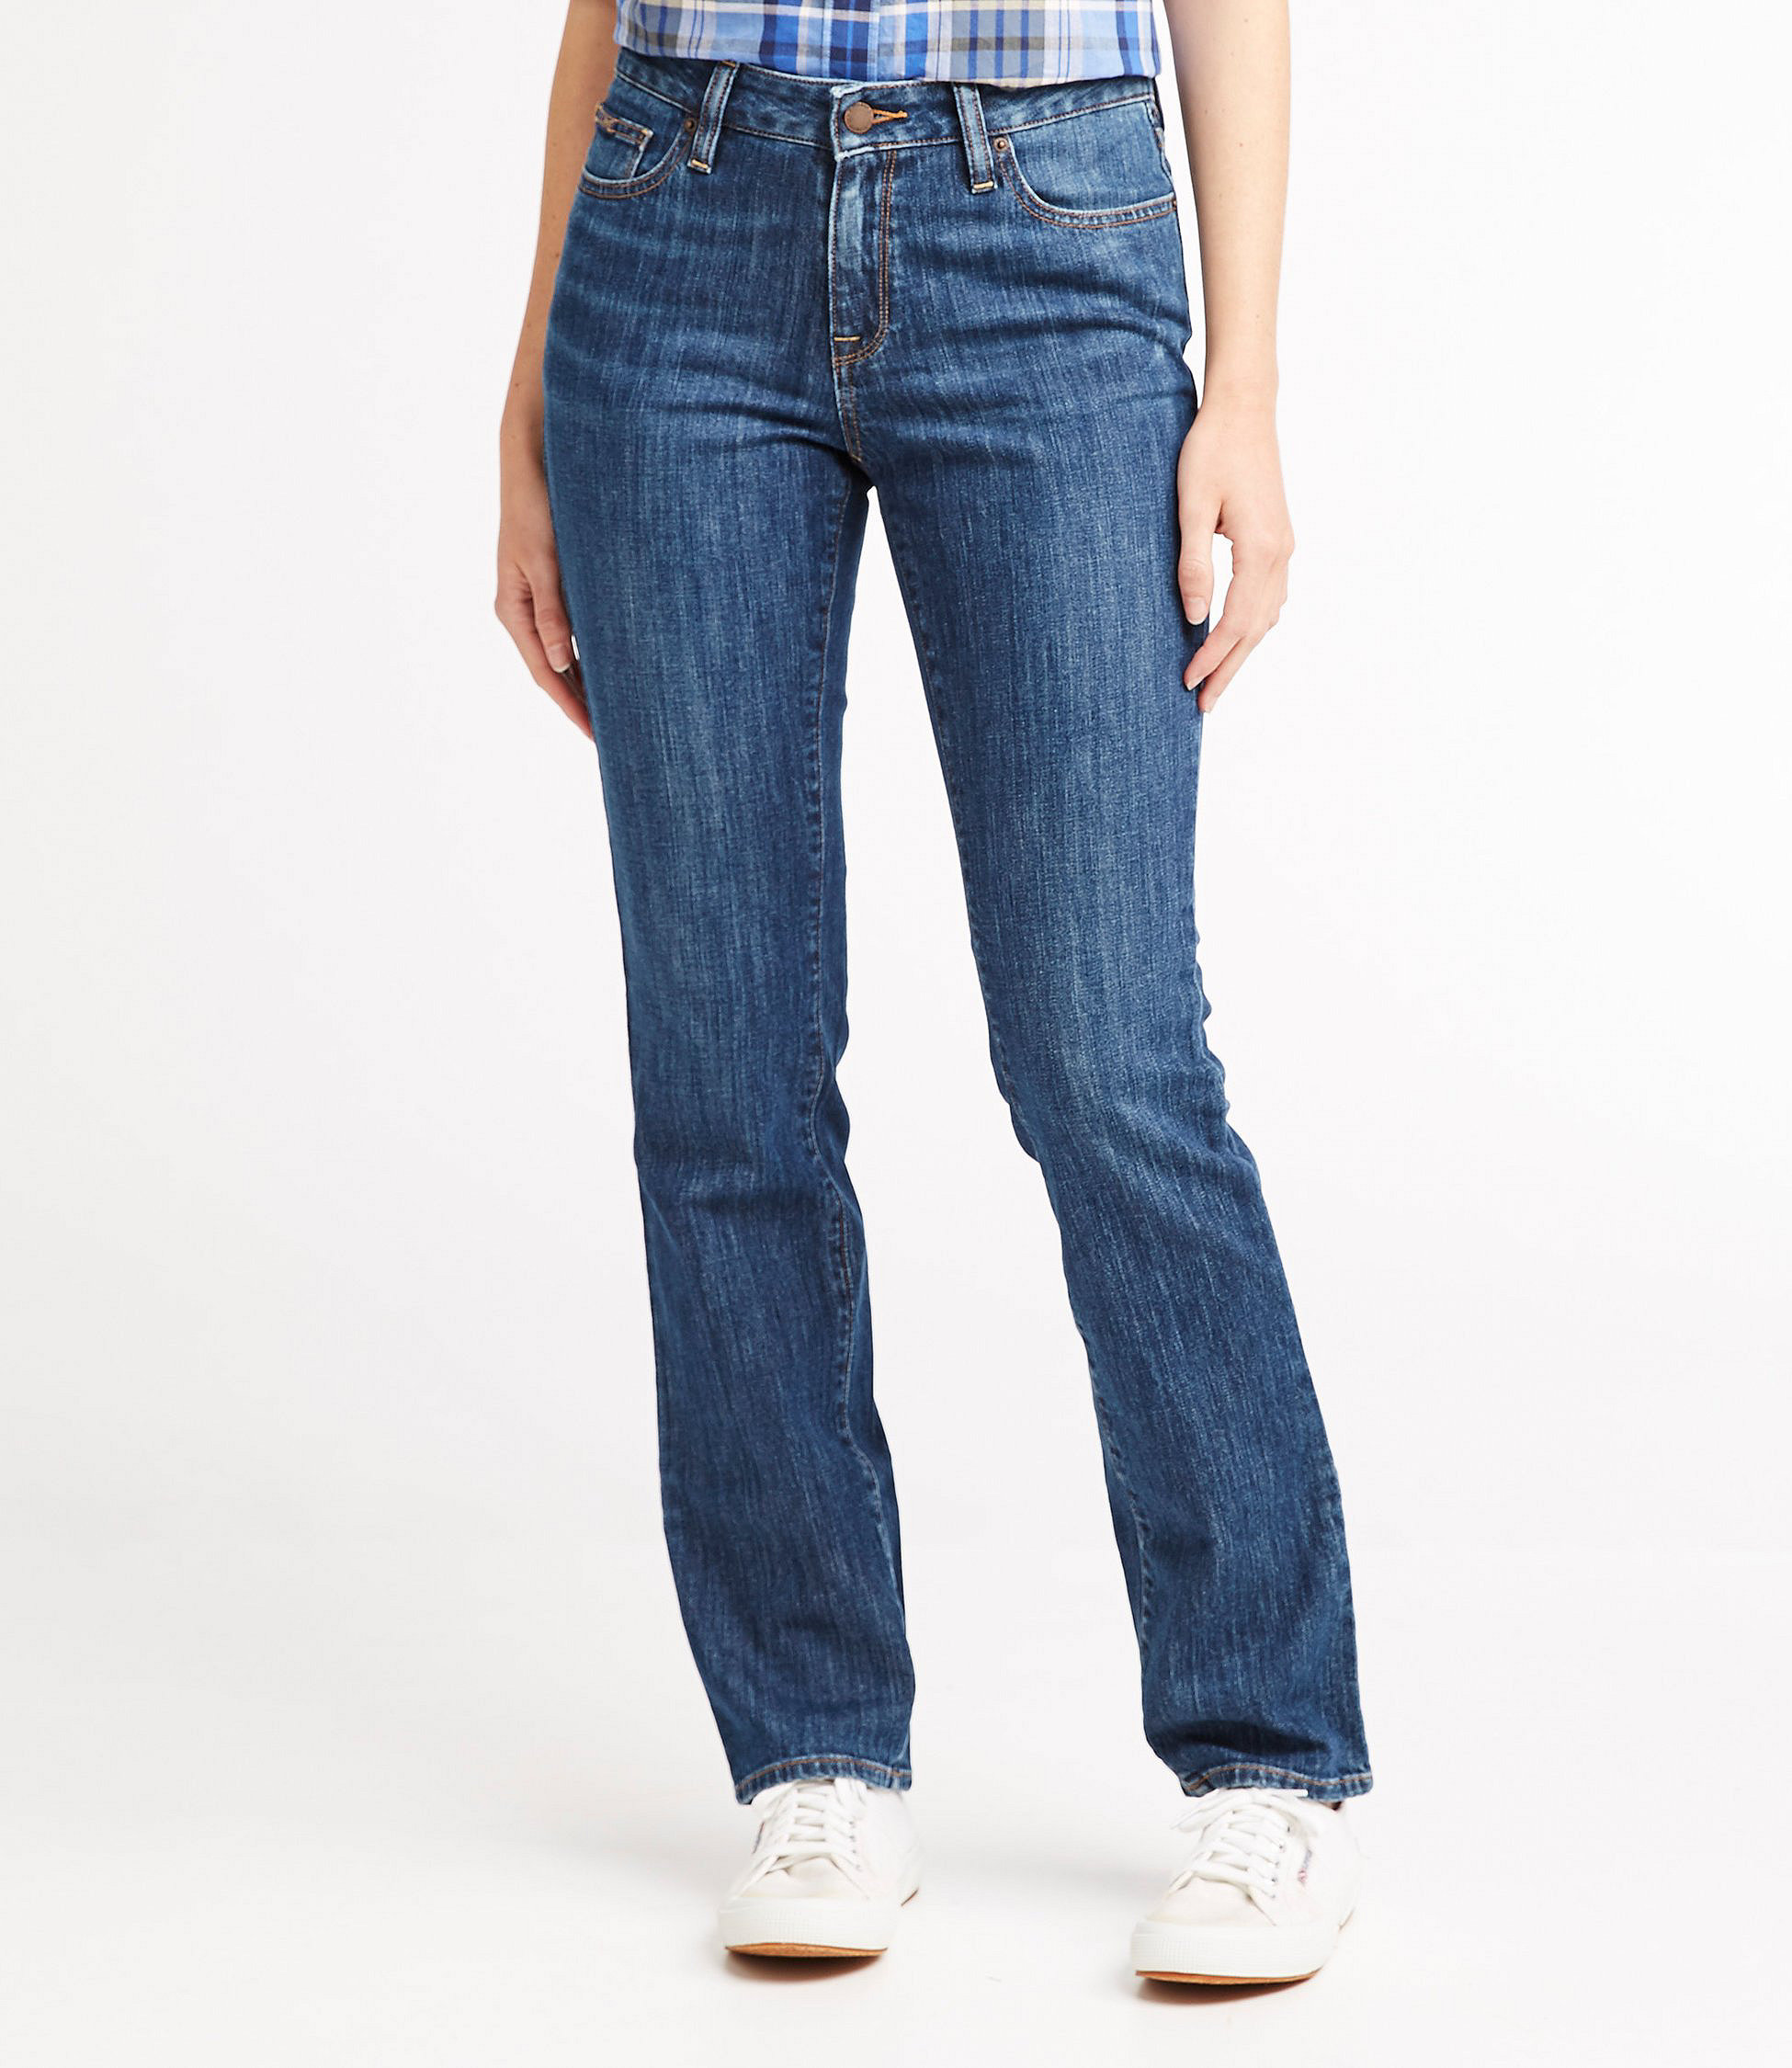 L.L.Bean 1912 Jeans, Favorite Fit Straight Leg by L.L.Bean